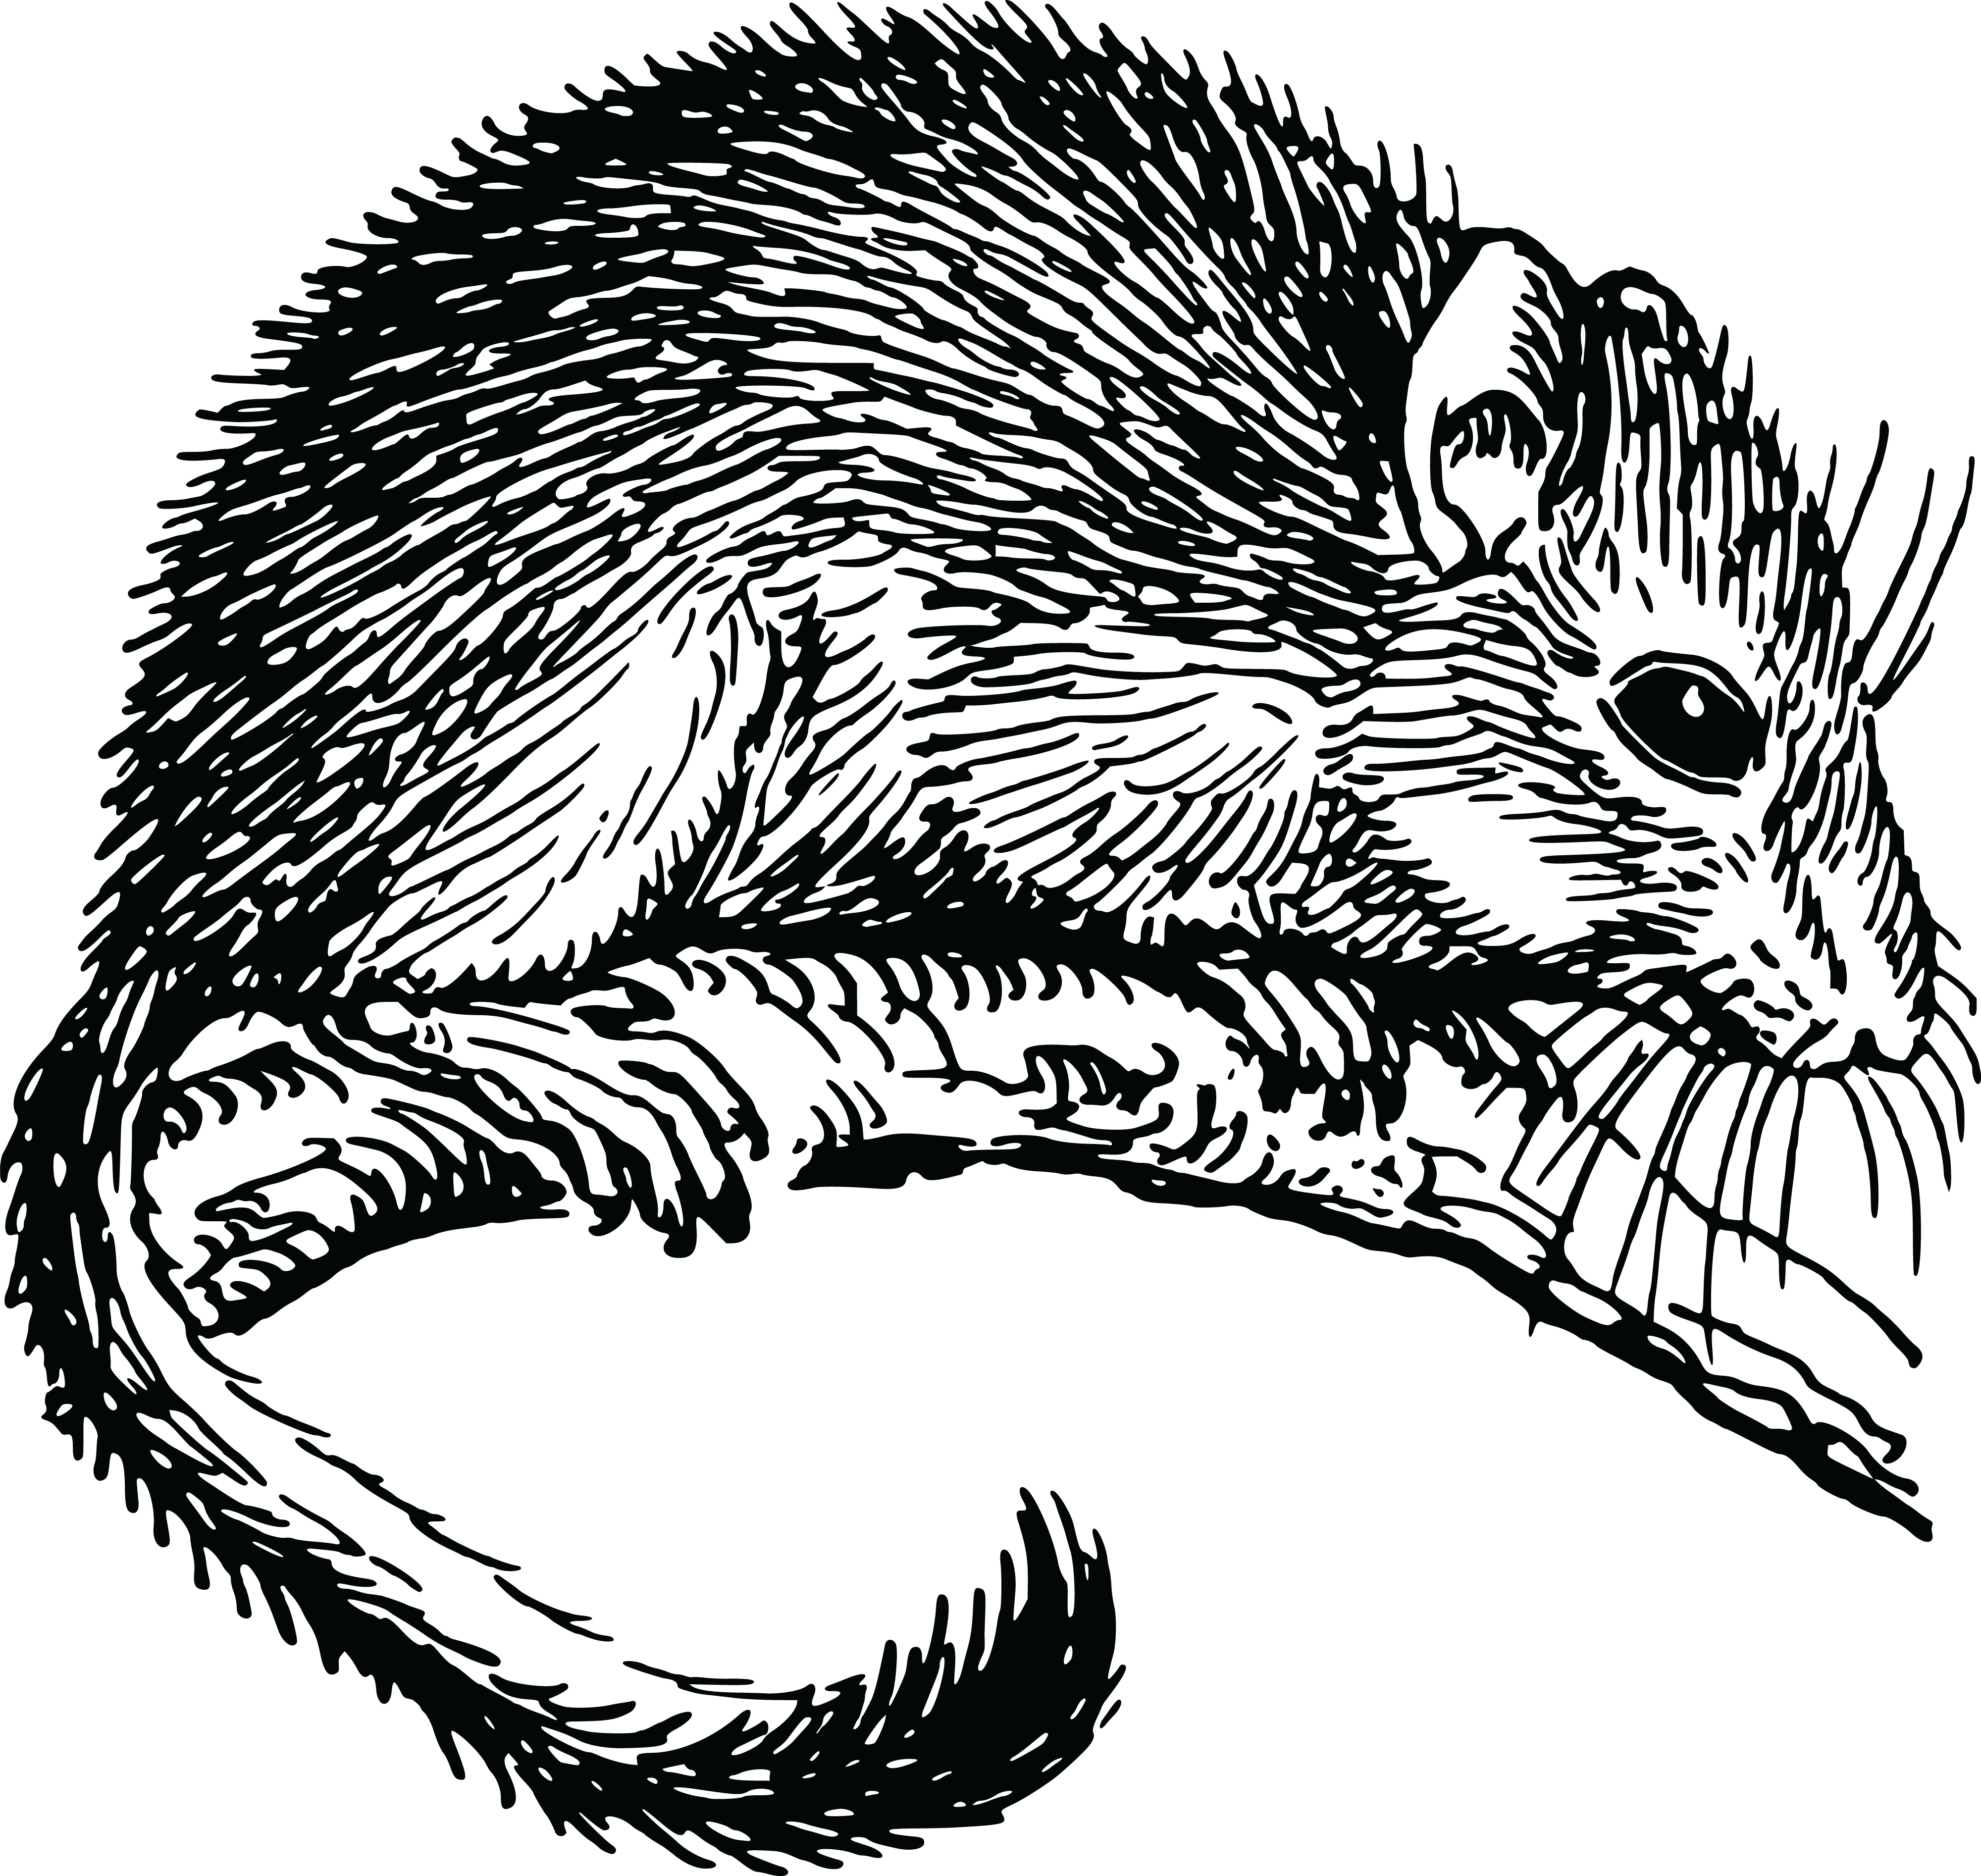 Rat clipart vole. Collection of free dormice